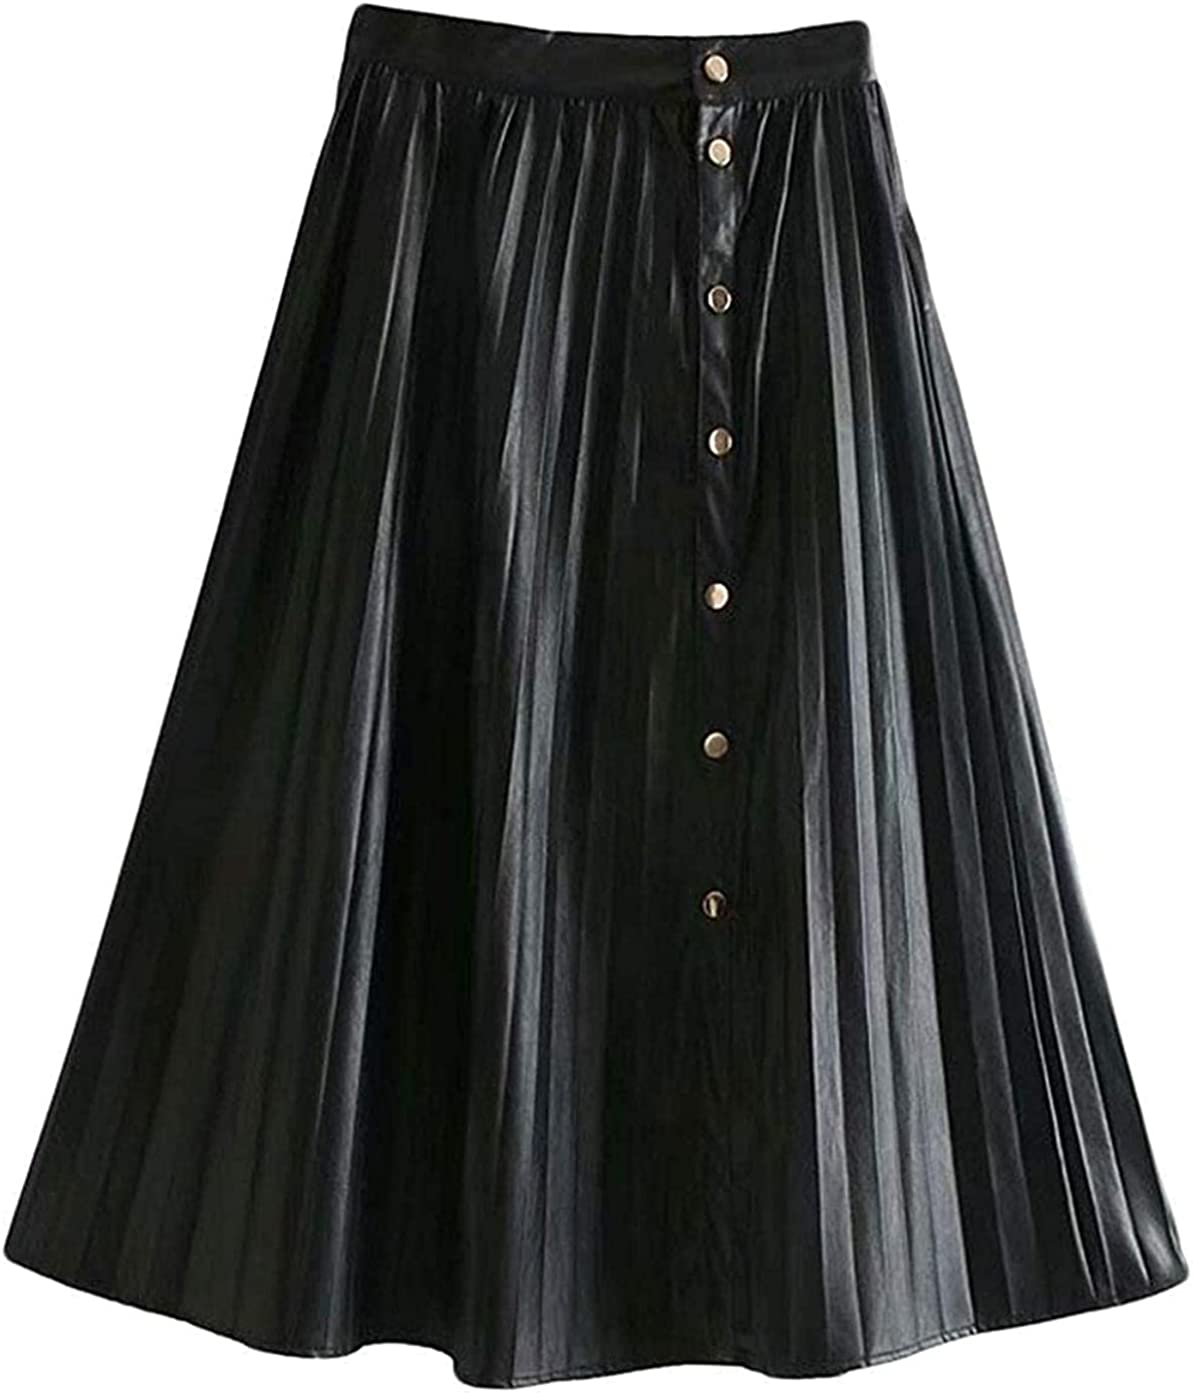 Finerun Women's Casual One Piece PU Faux Leather Pleated Flared Midi A-Line Skirt